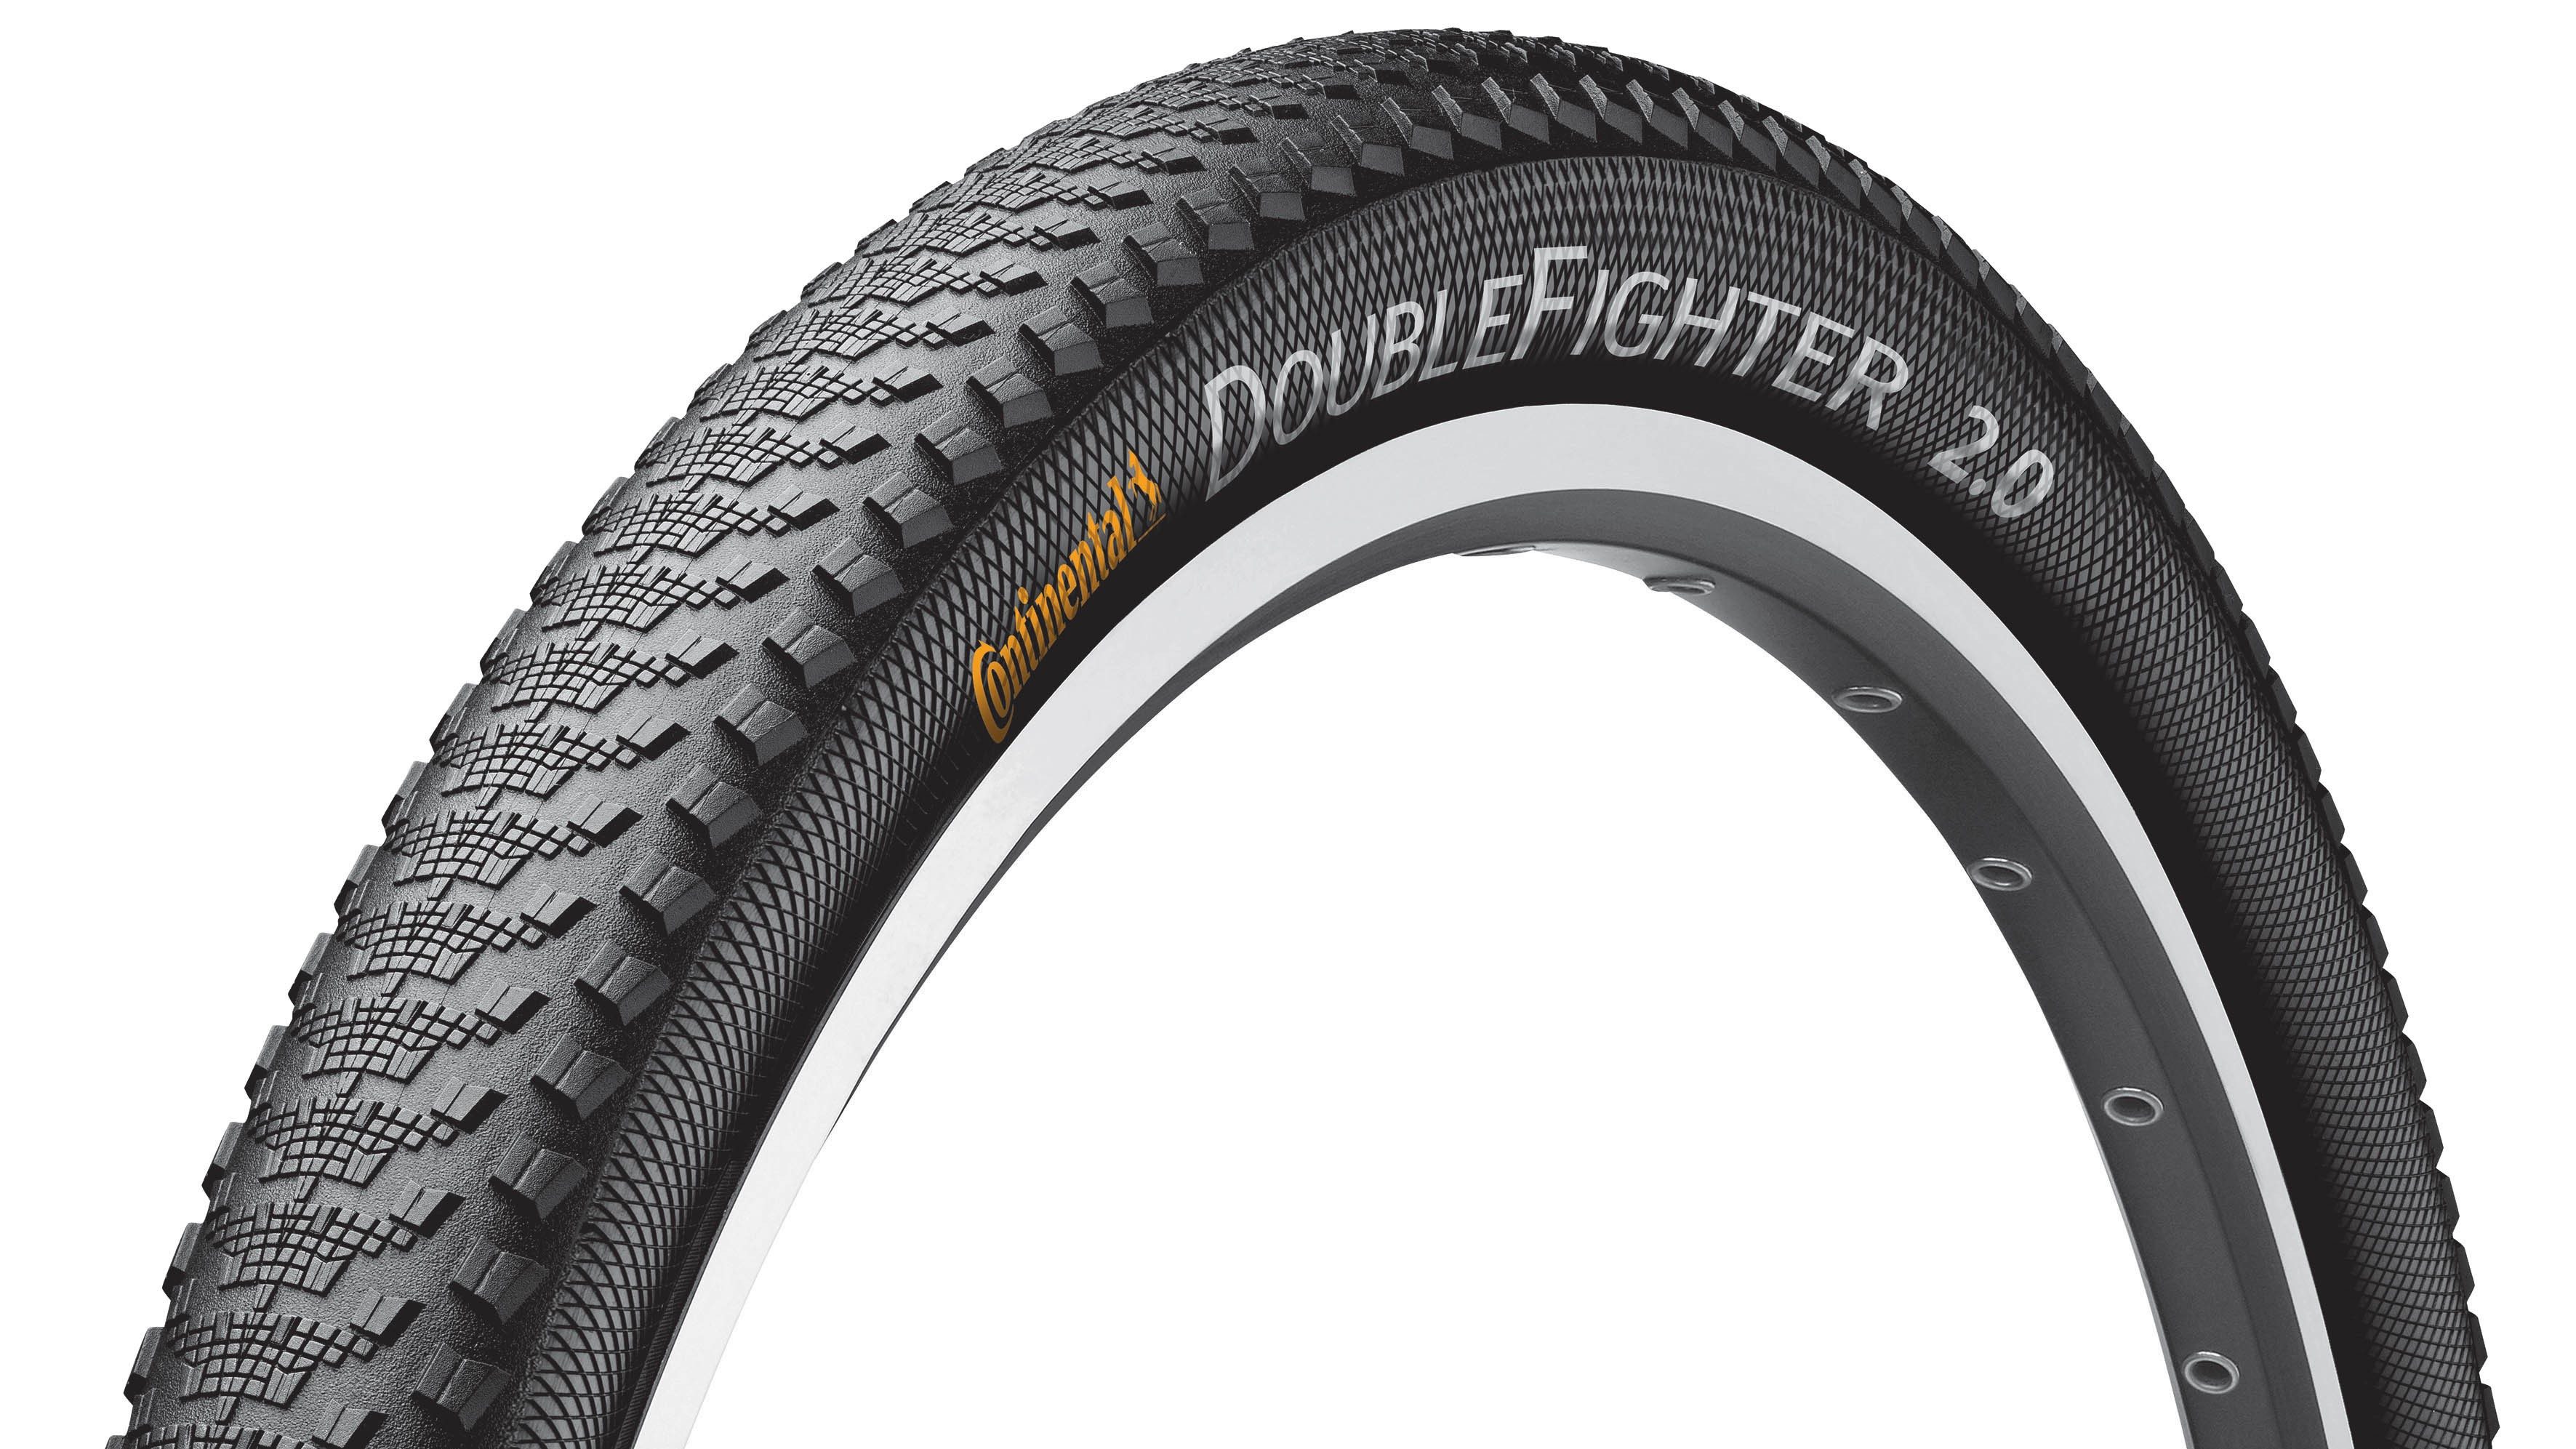 The Double Fighter III is an MTB tyre that'll run smooth on tarmac